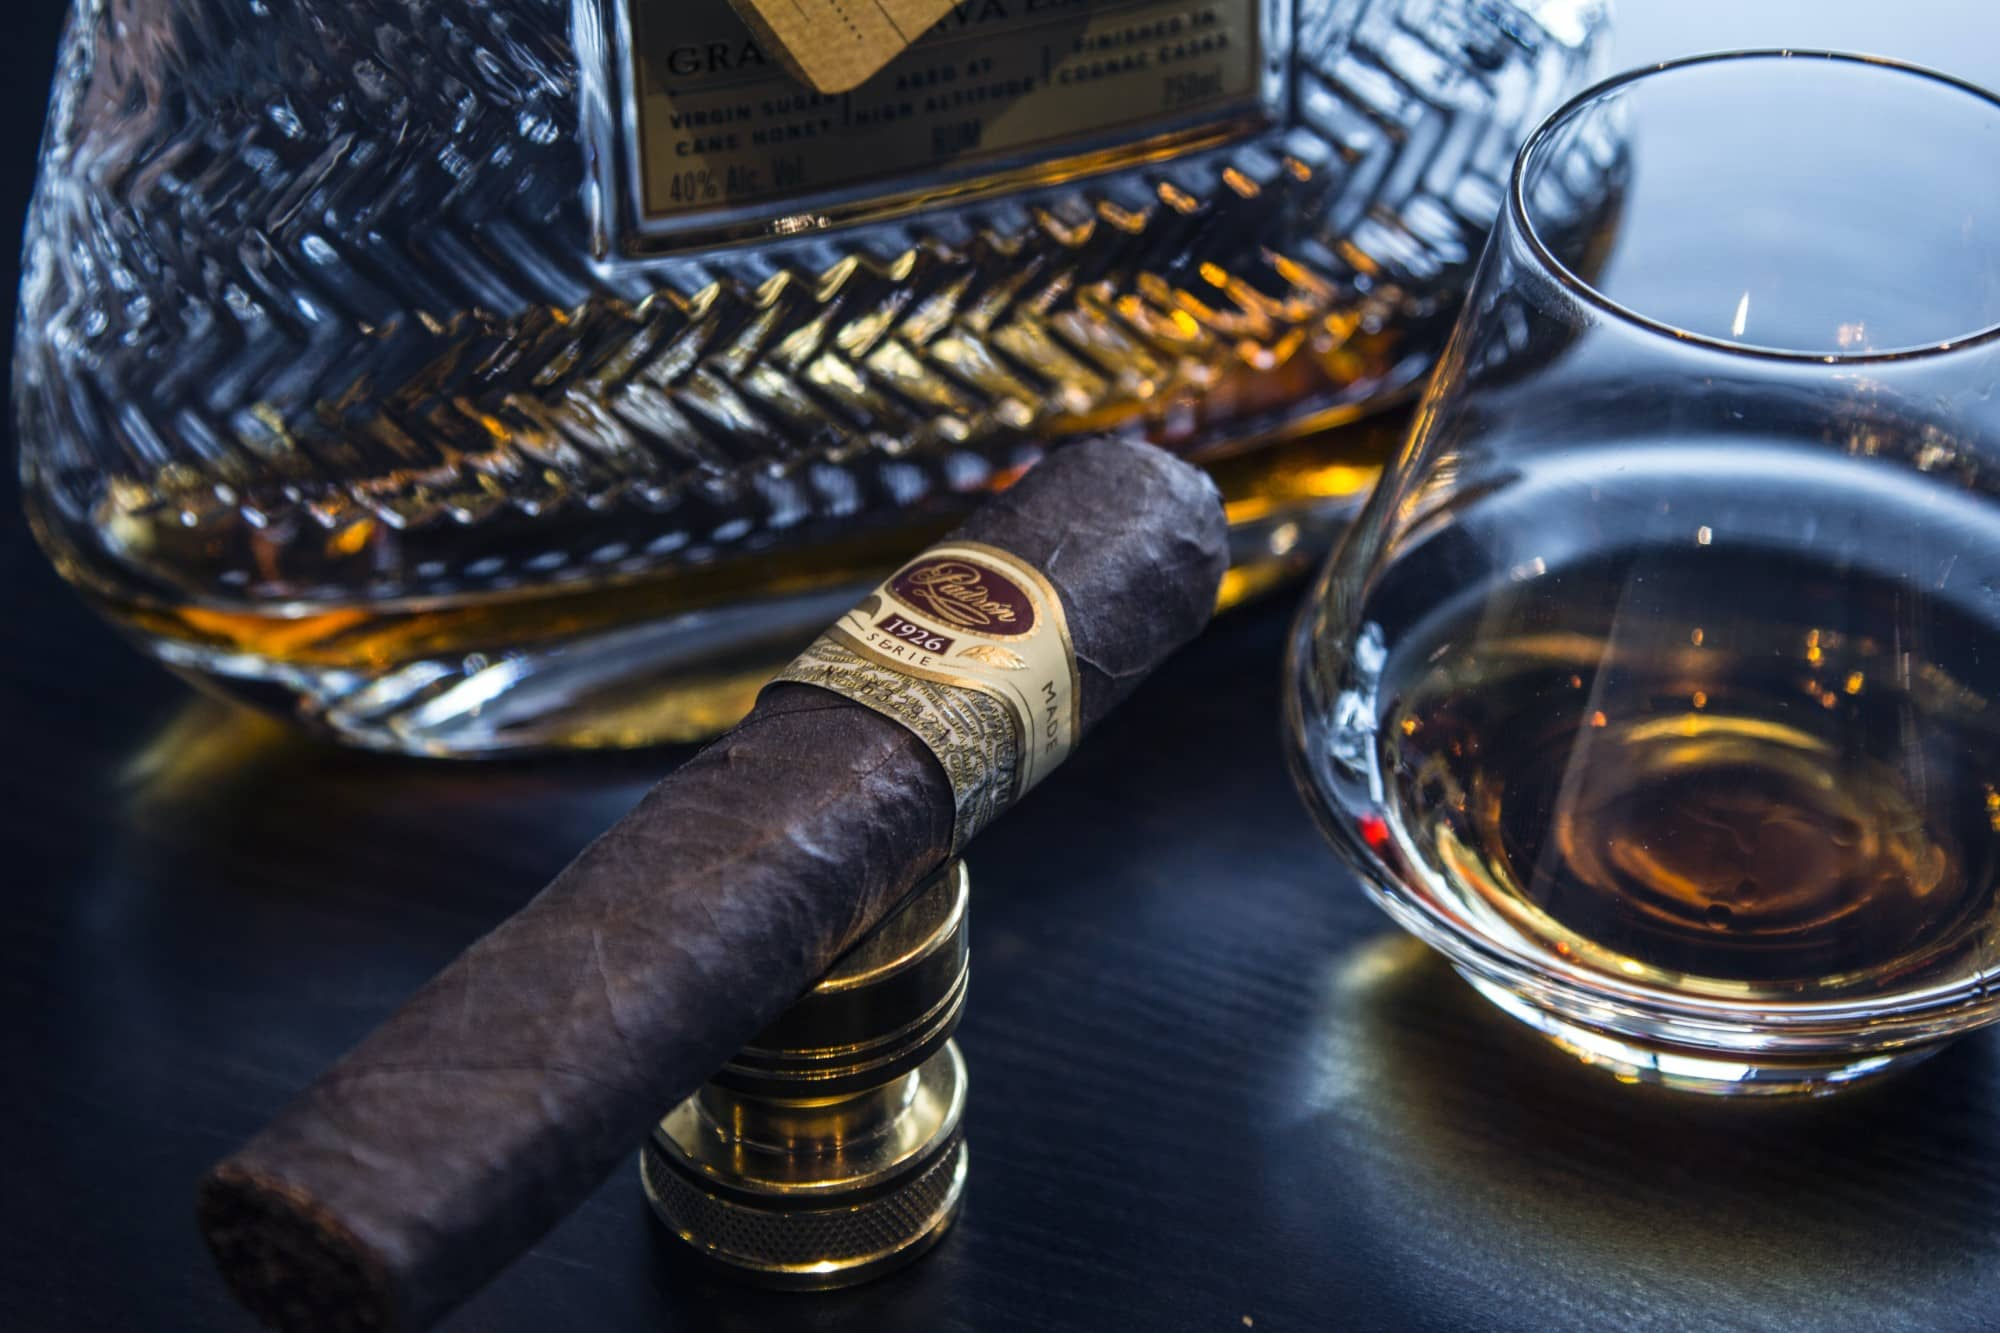 Cigar next to a glass and bottle of whisky